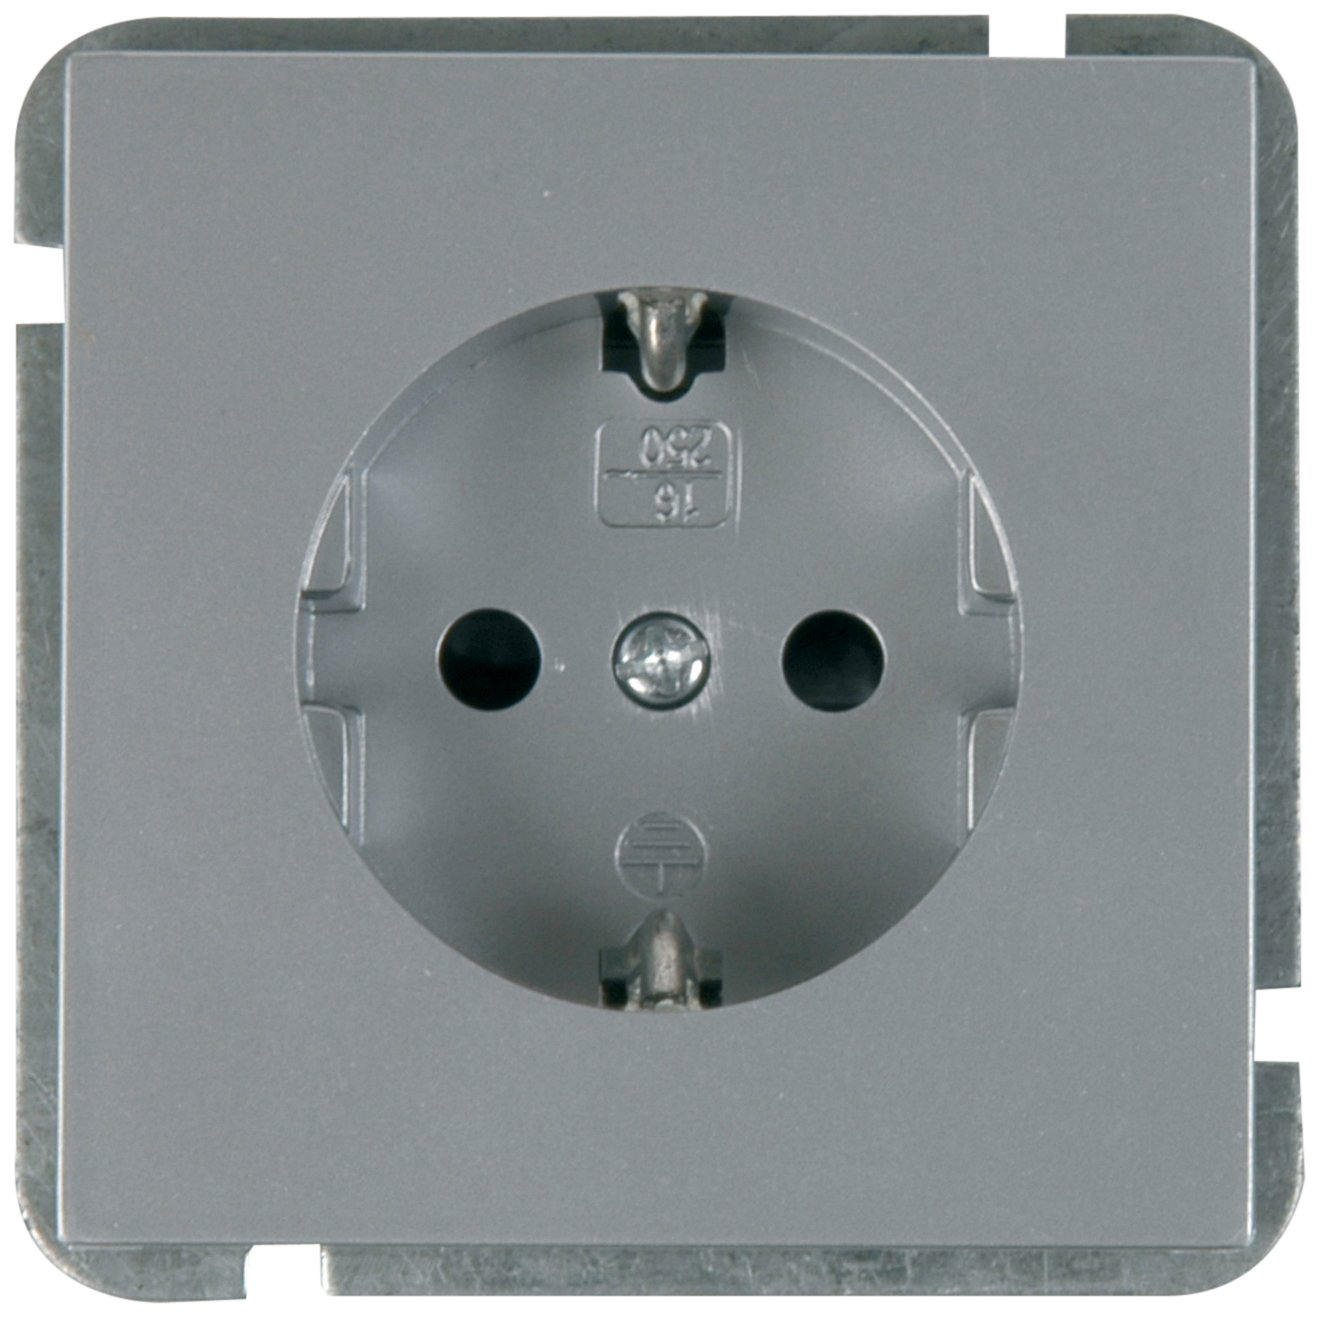 Unitec 43727 and Child Protection Outlet, San Marino, Spate ...